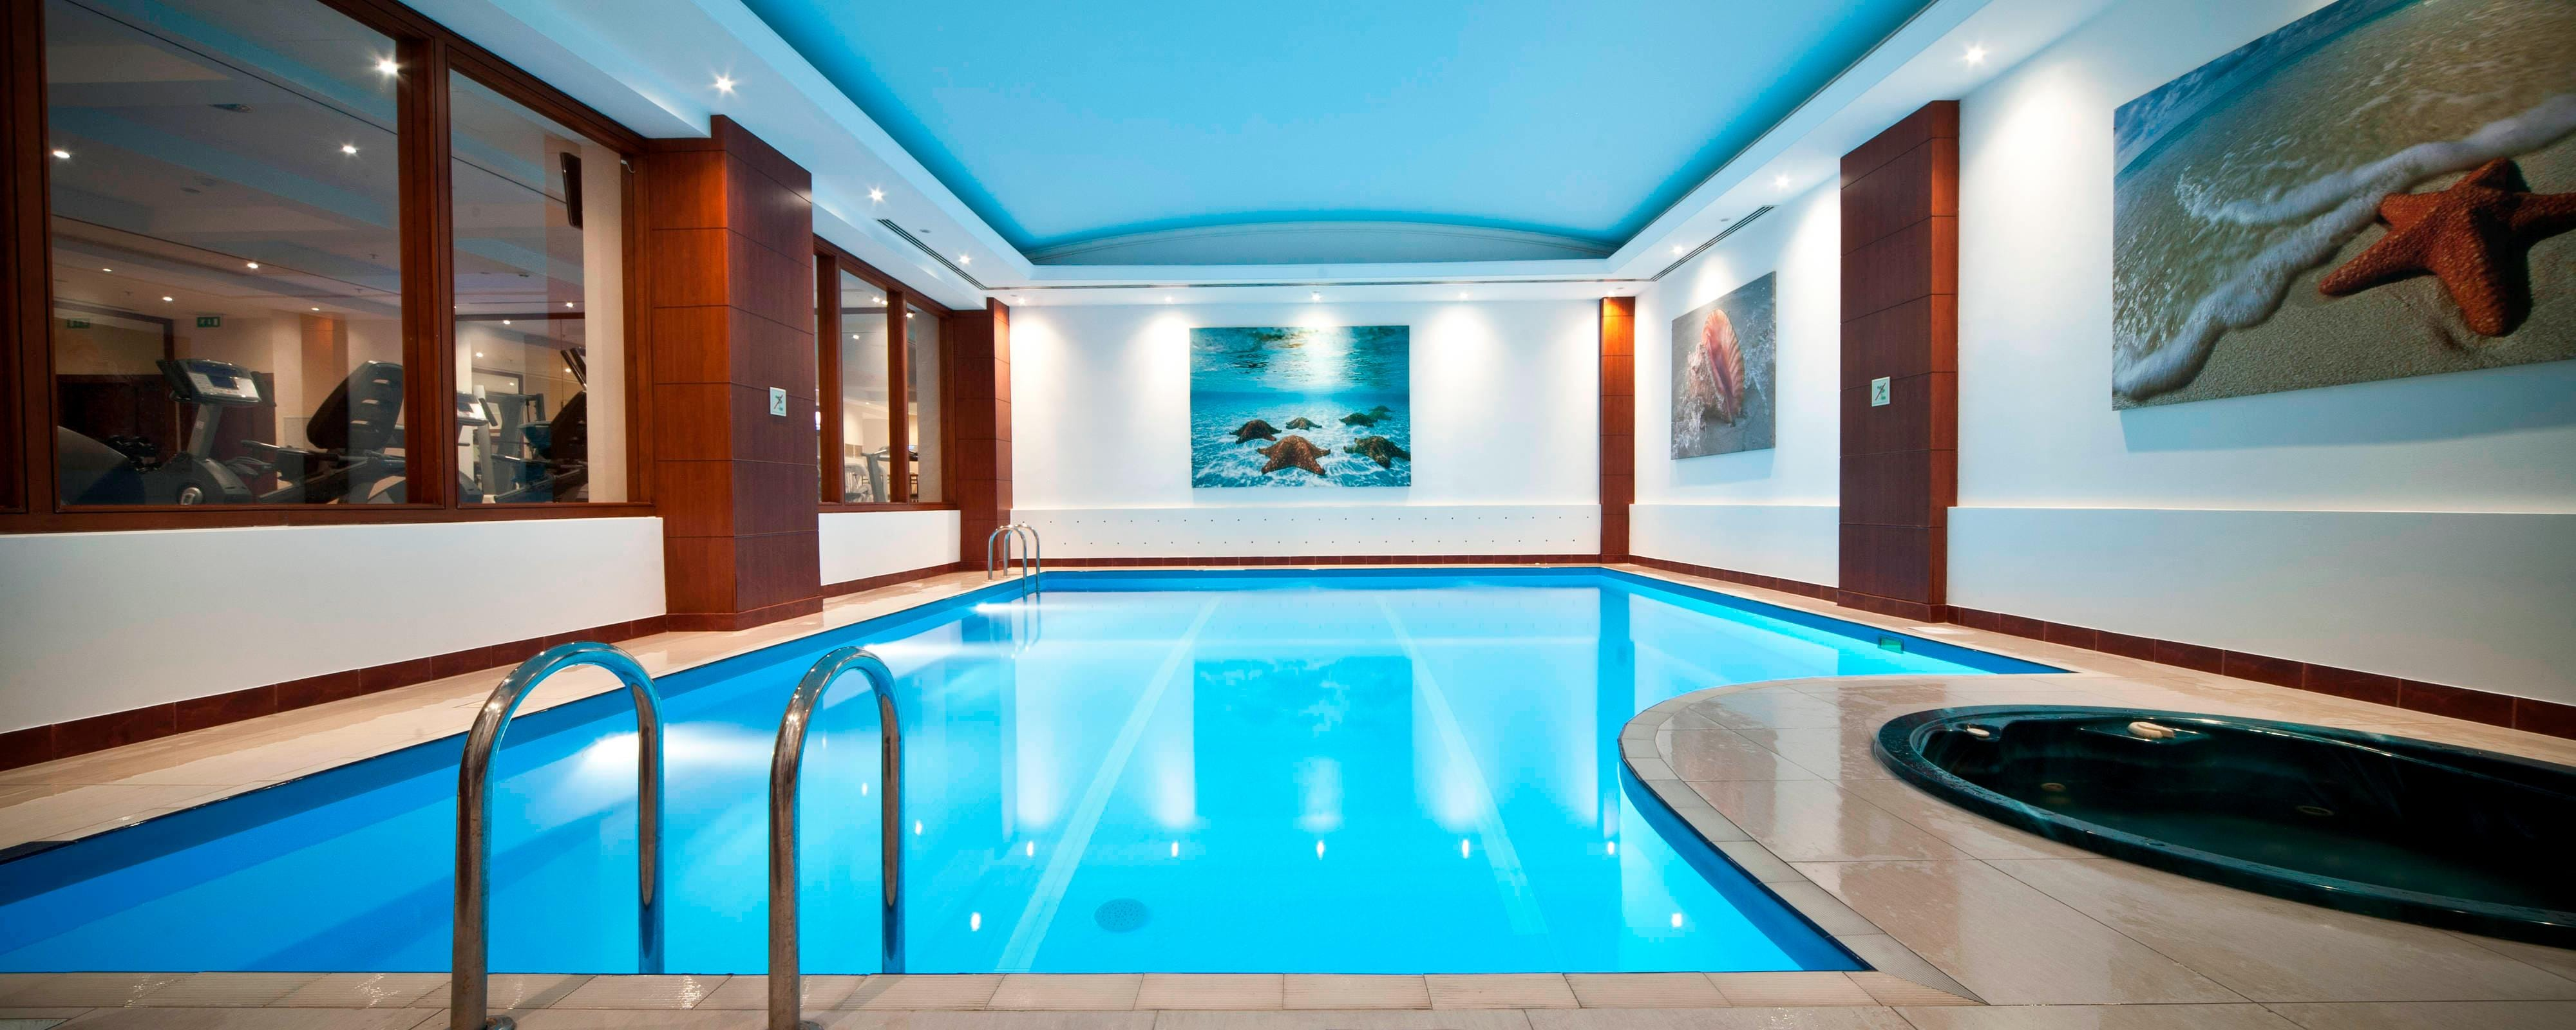 Tbilisi Hotels With Swimming Pools Courtyard Tbilisi